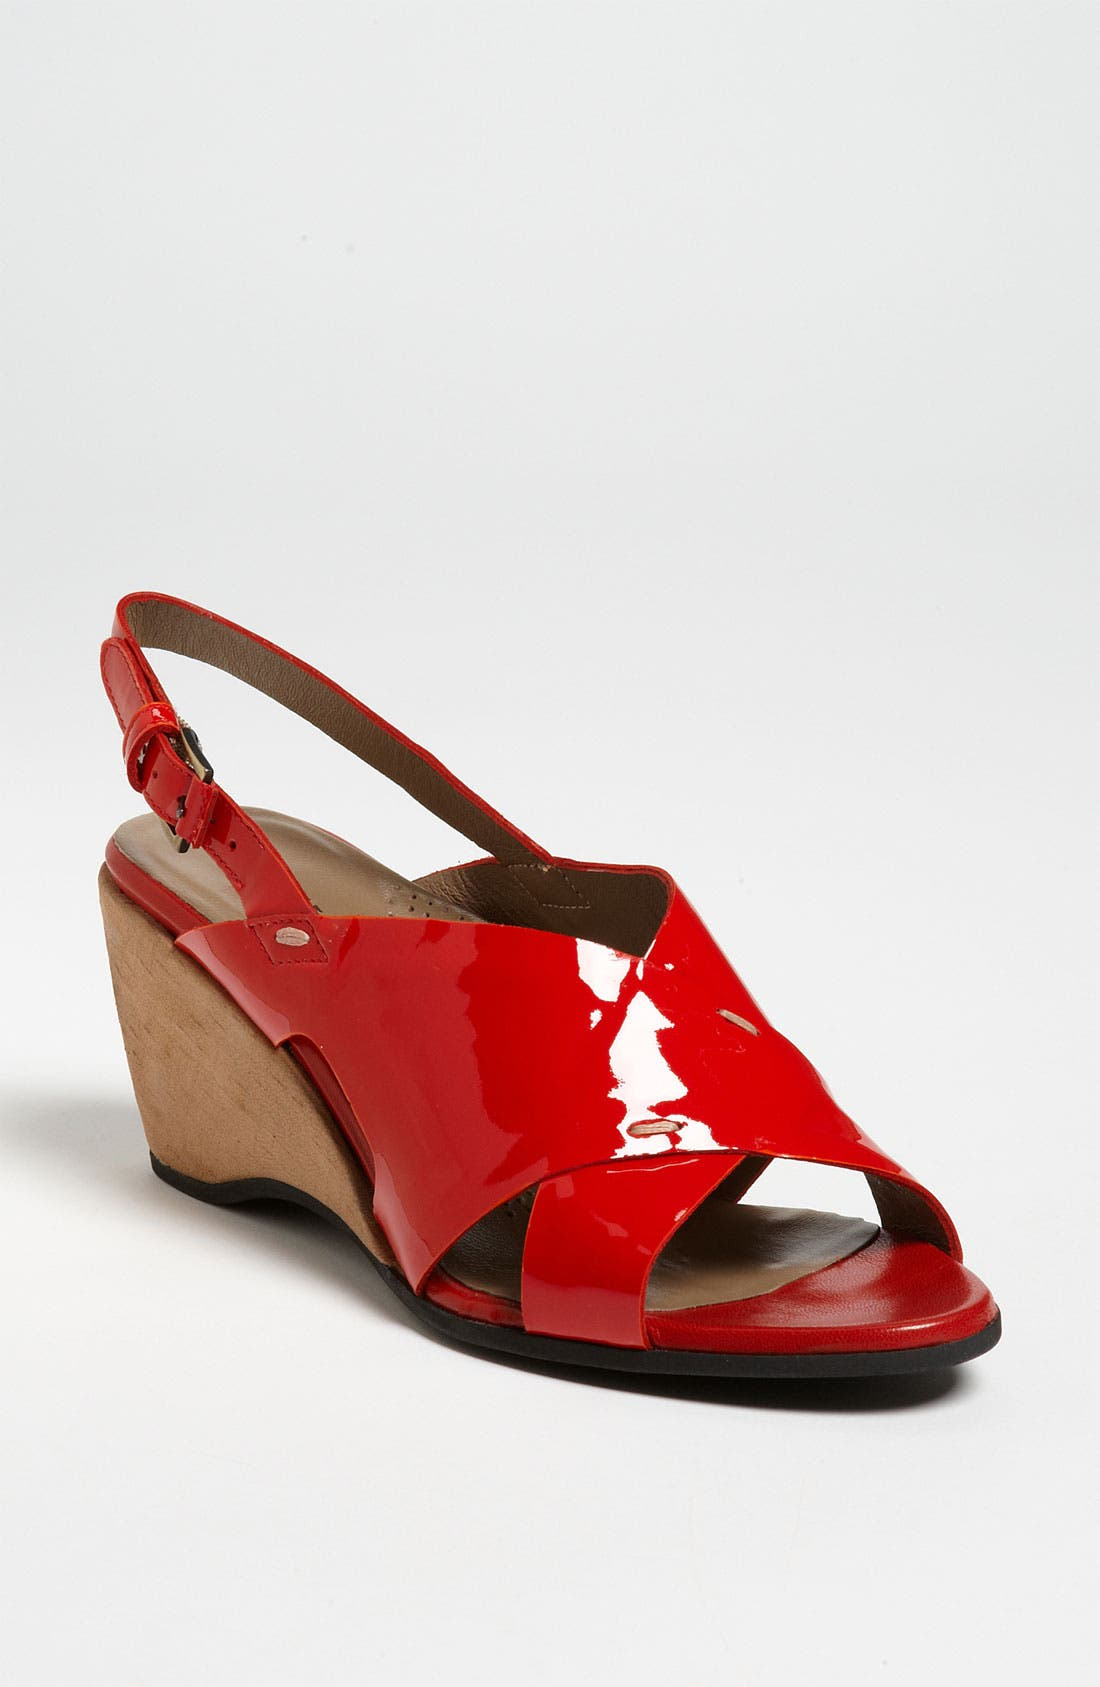 Alternate Image 1 Selected - Anyi Lu 'Luisa' Sandal